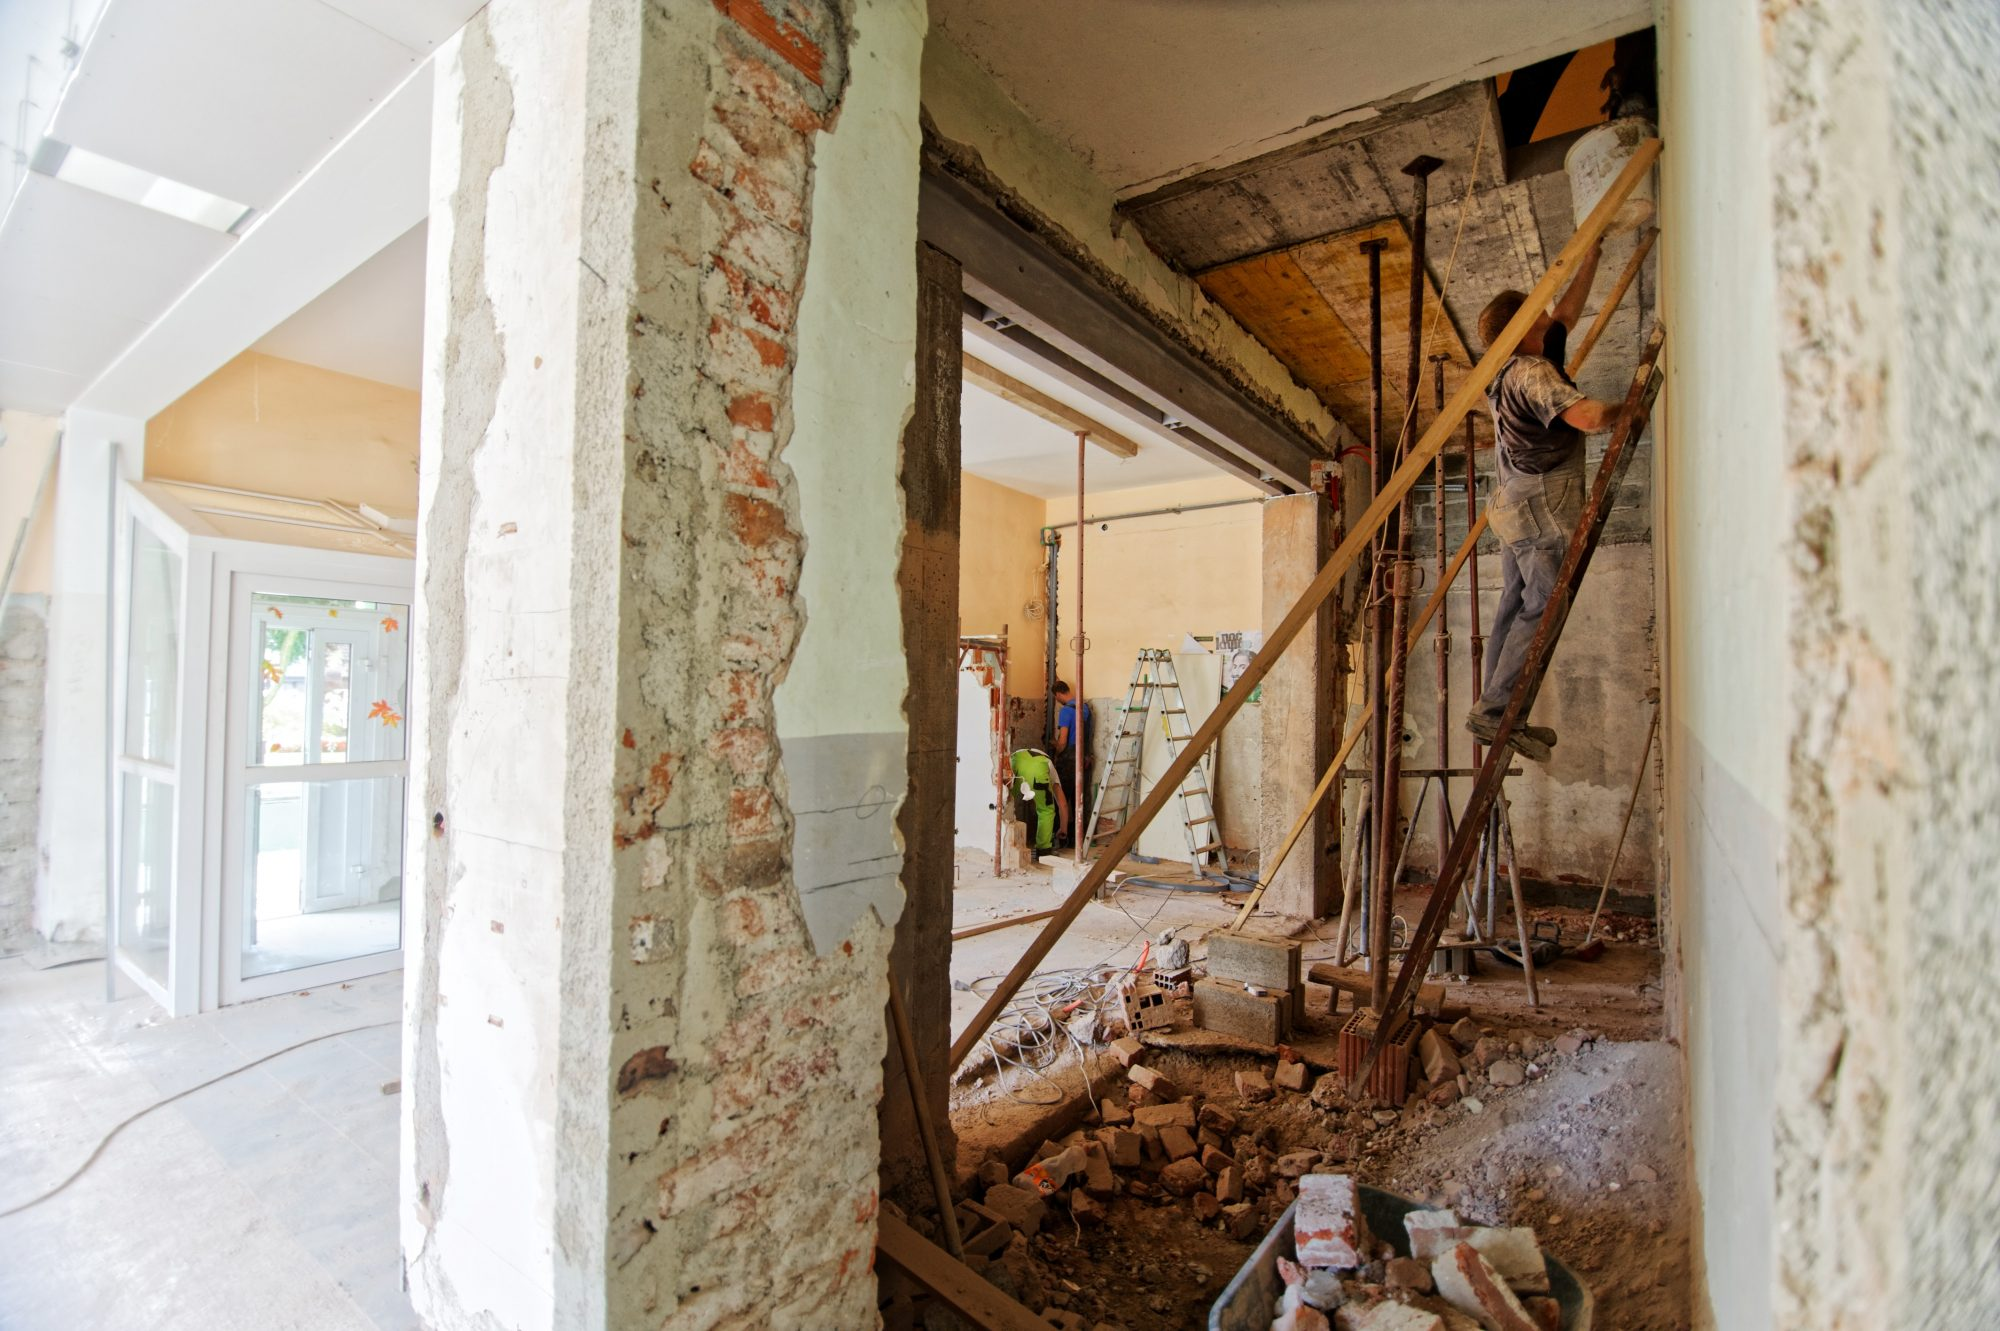 Should You Renovate or Sell Your Home?  5 Factors to Consider.